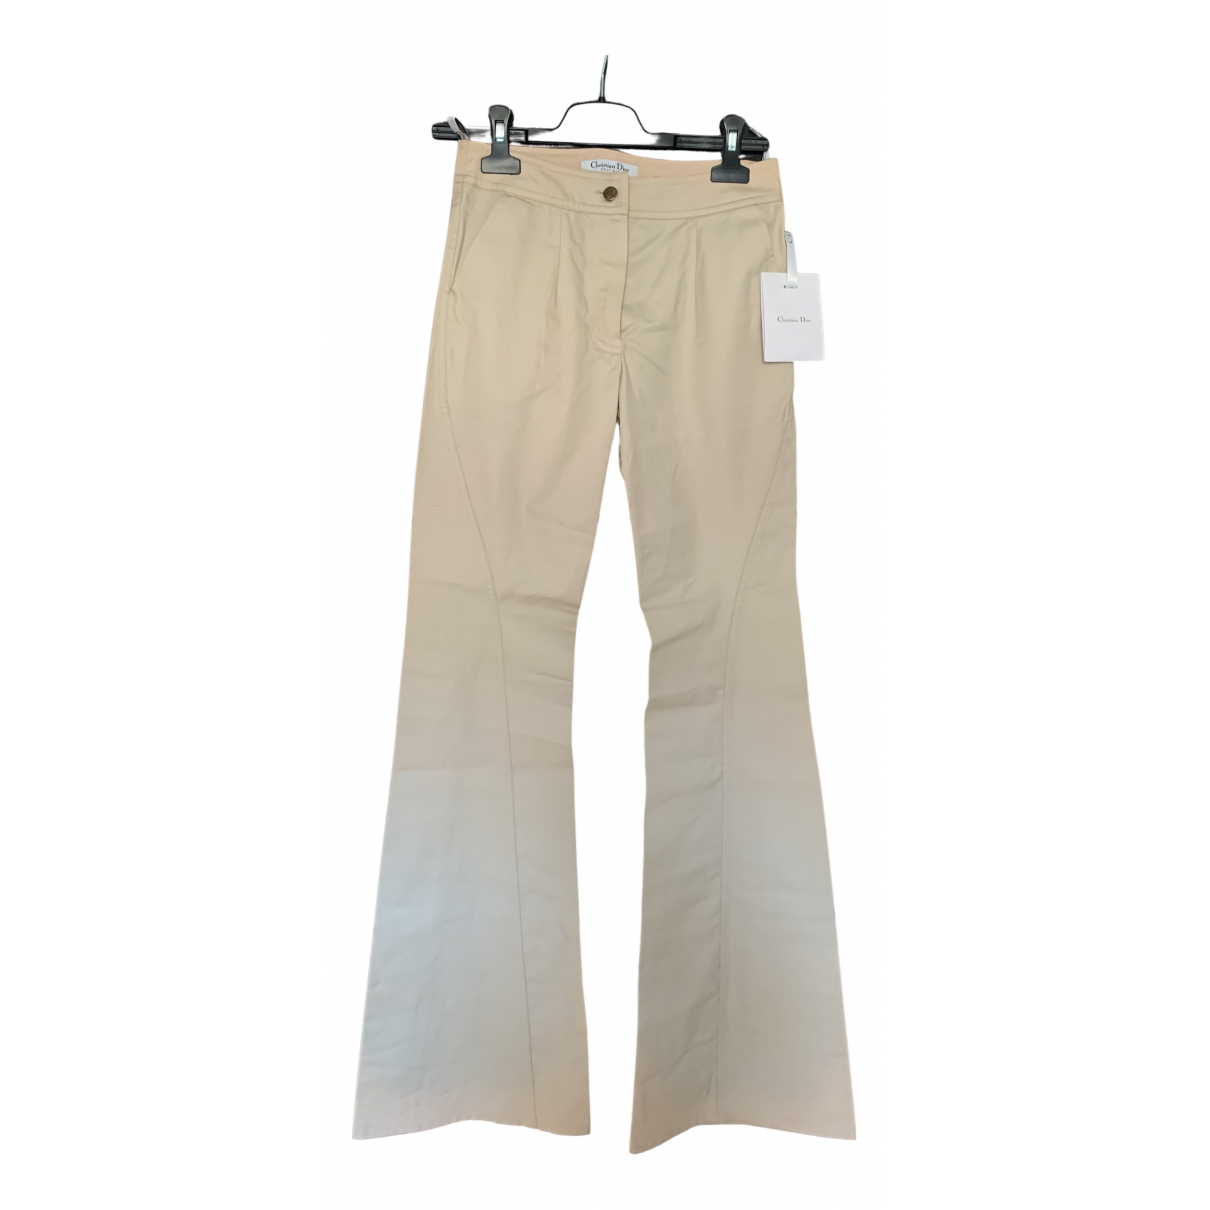 Dior N Beige Cotton Trousers for Women 34 FR